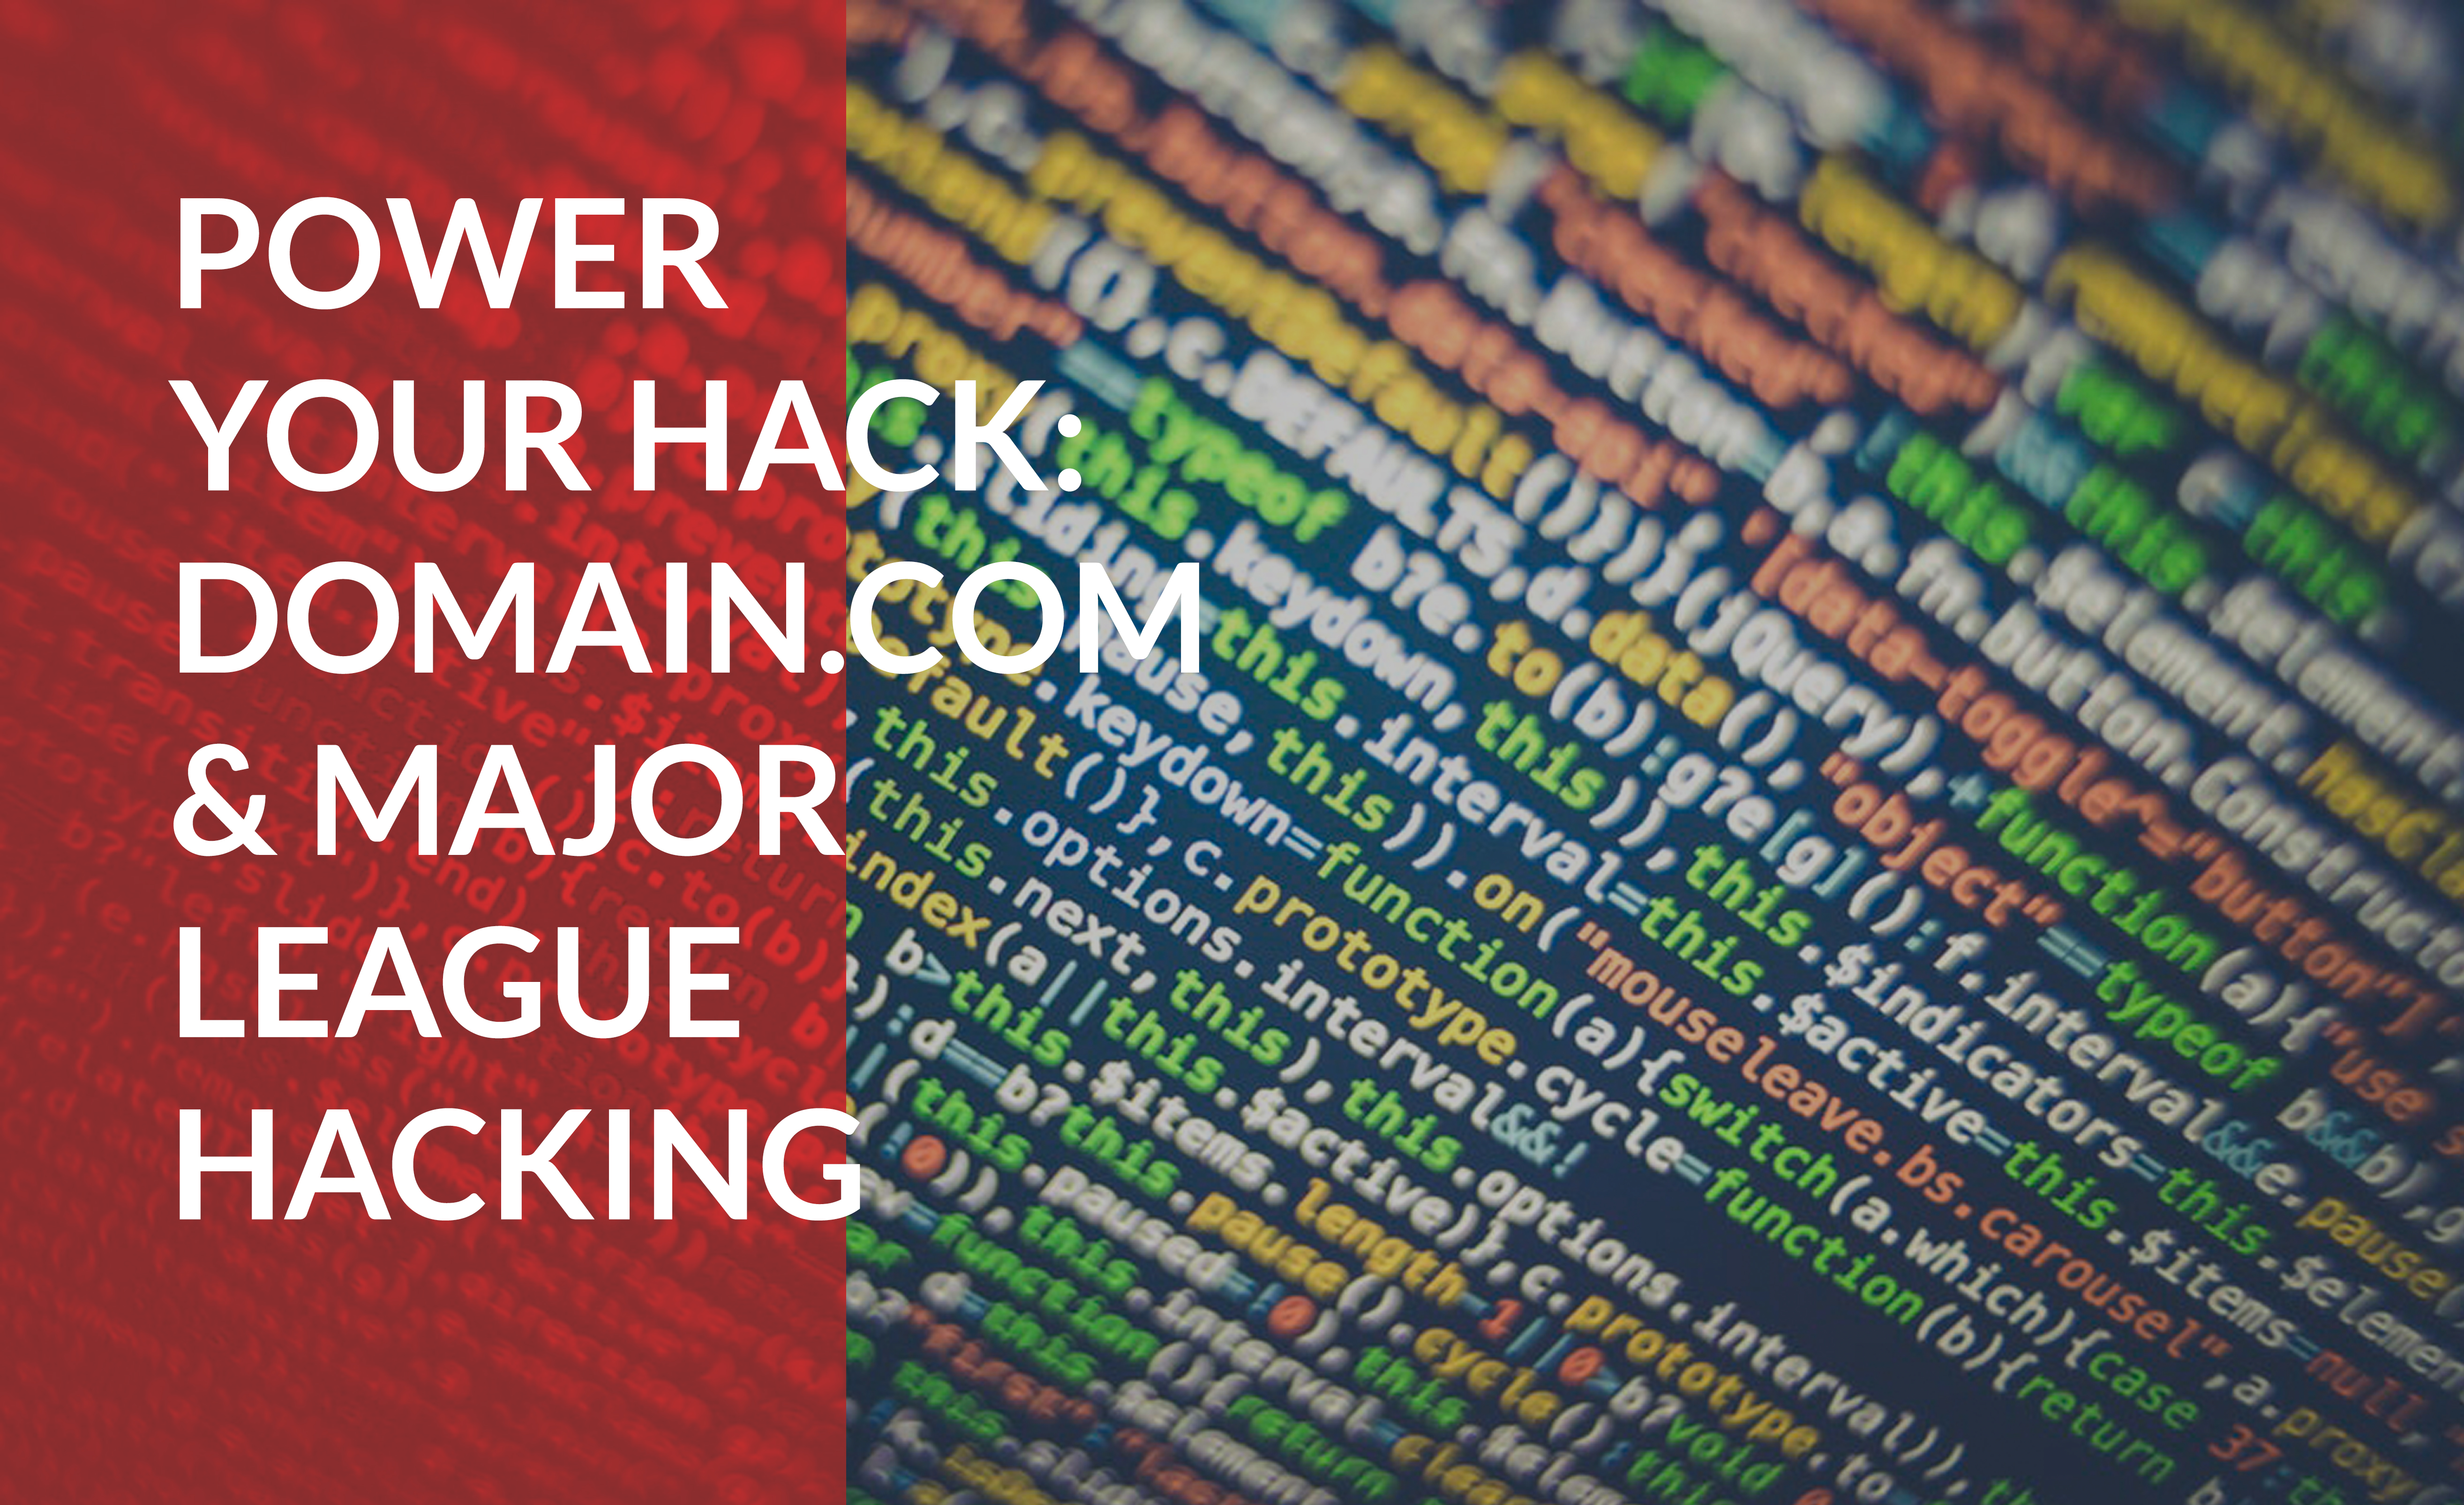 Learn to power your hack with Domain.com and Major League Hacking